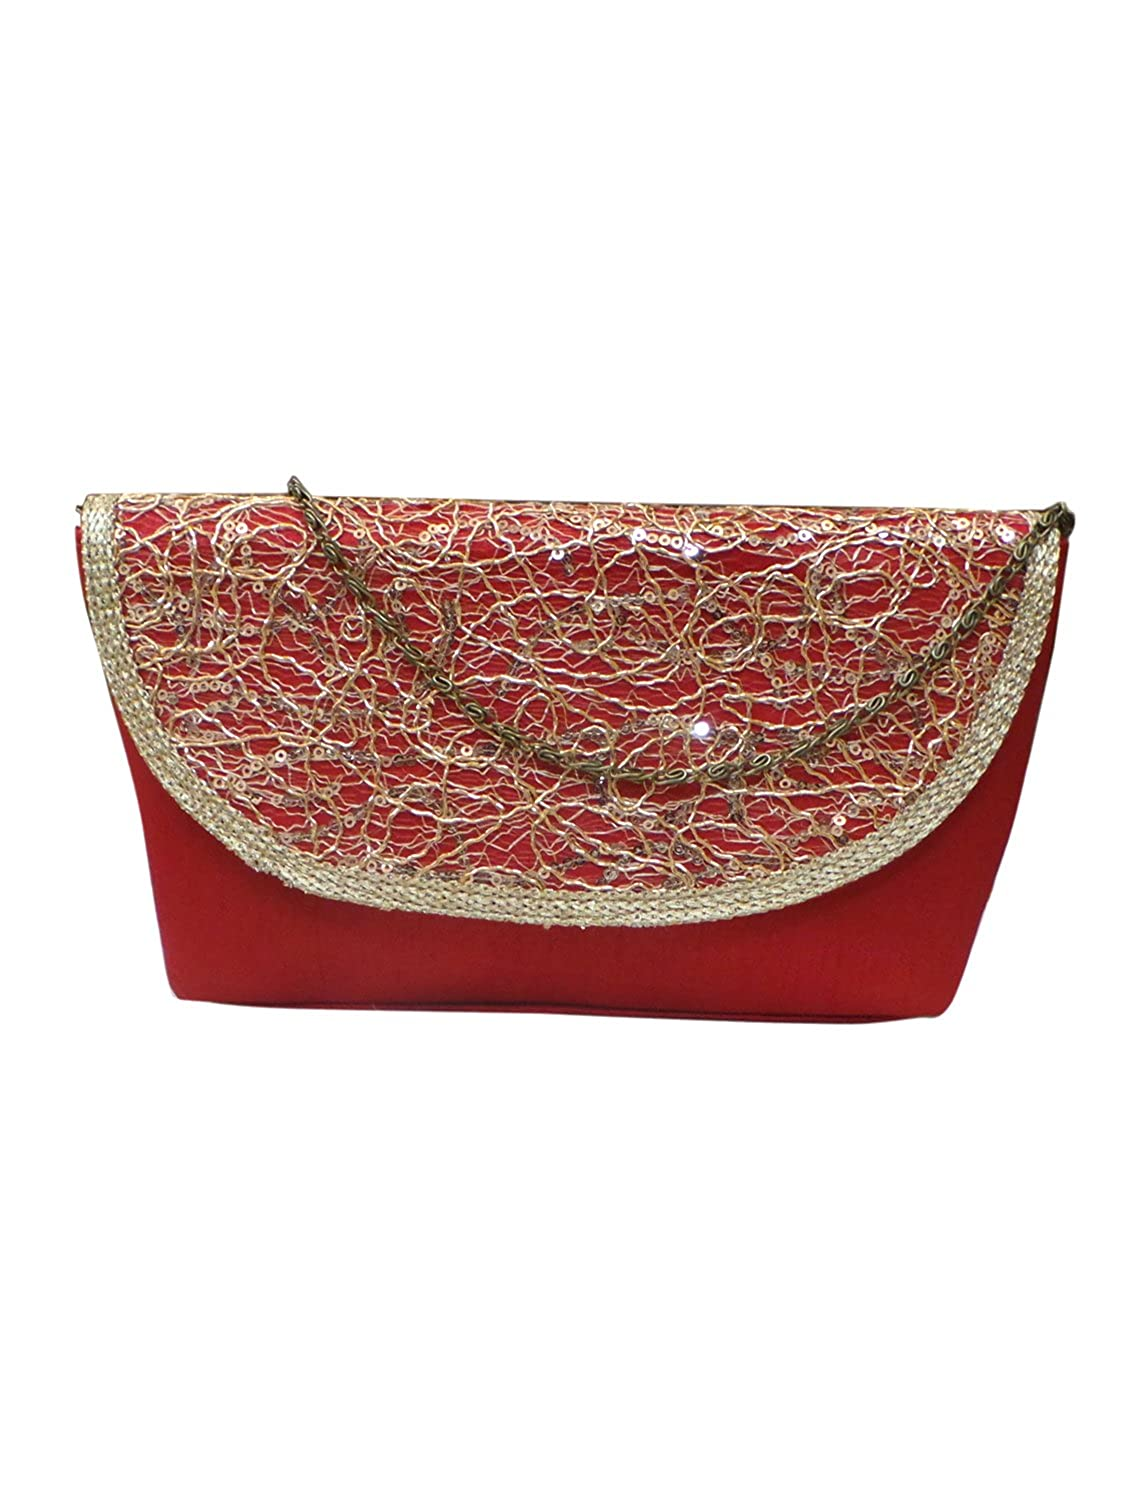 Bhamini Red Raw Silk Clutch with Golden Zari Maze